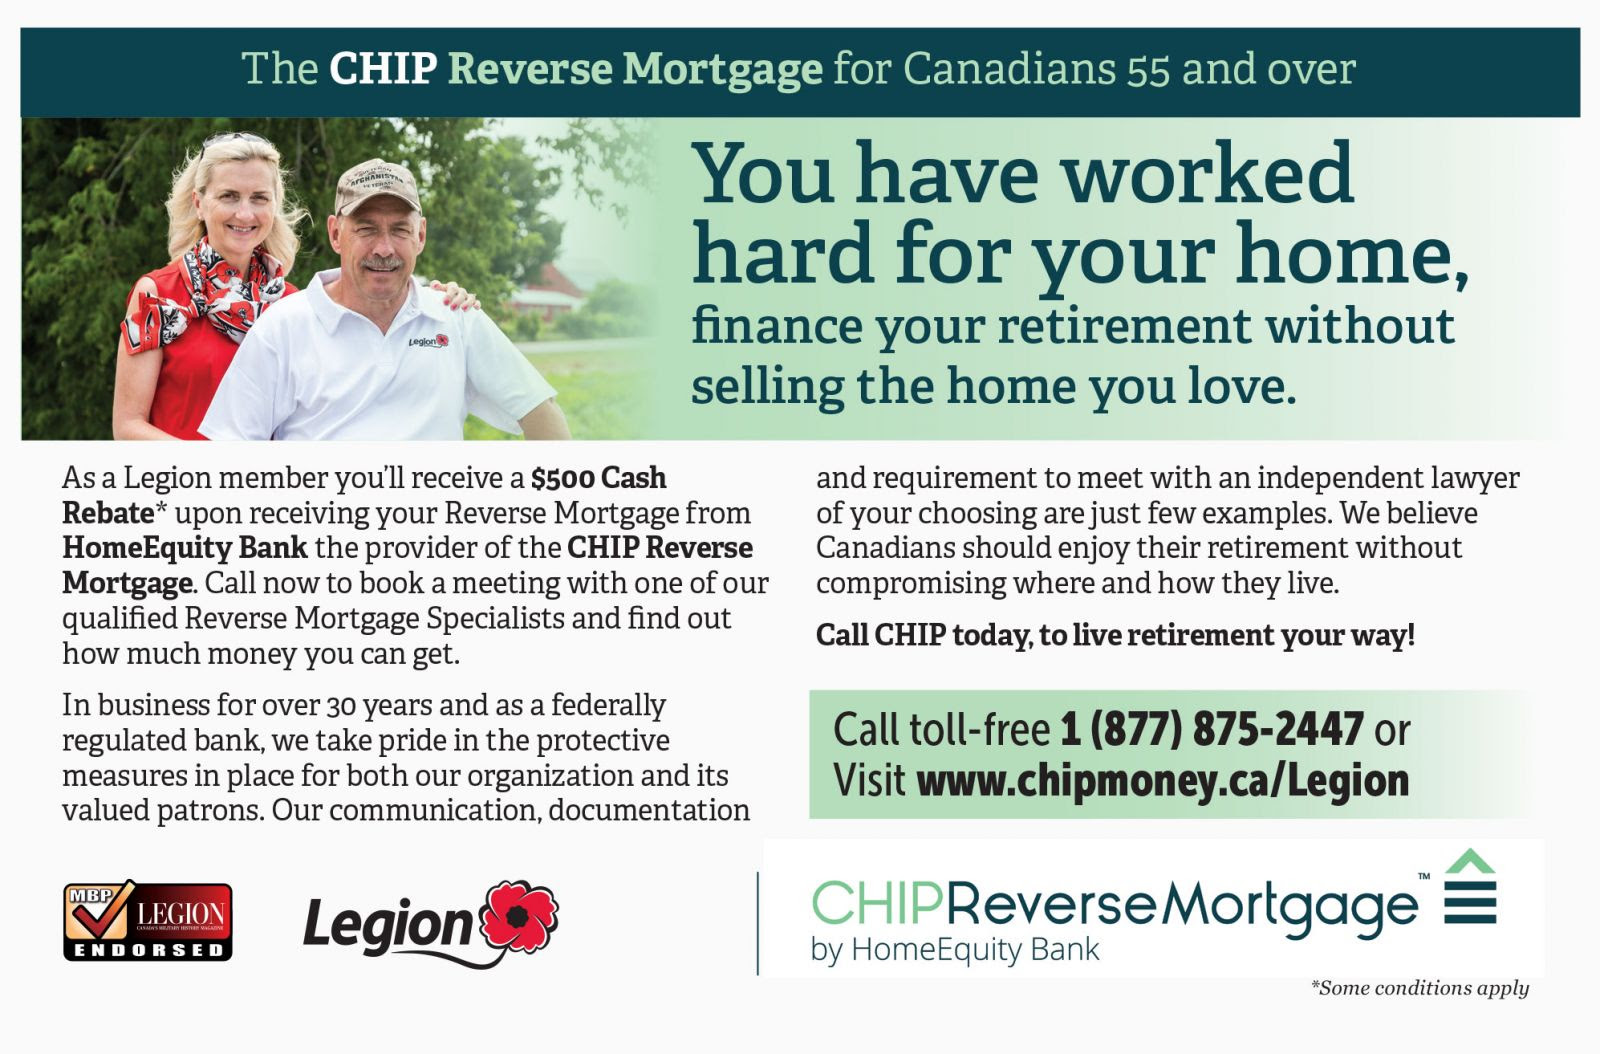 Chip Mortgage - Home Equity